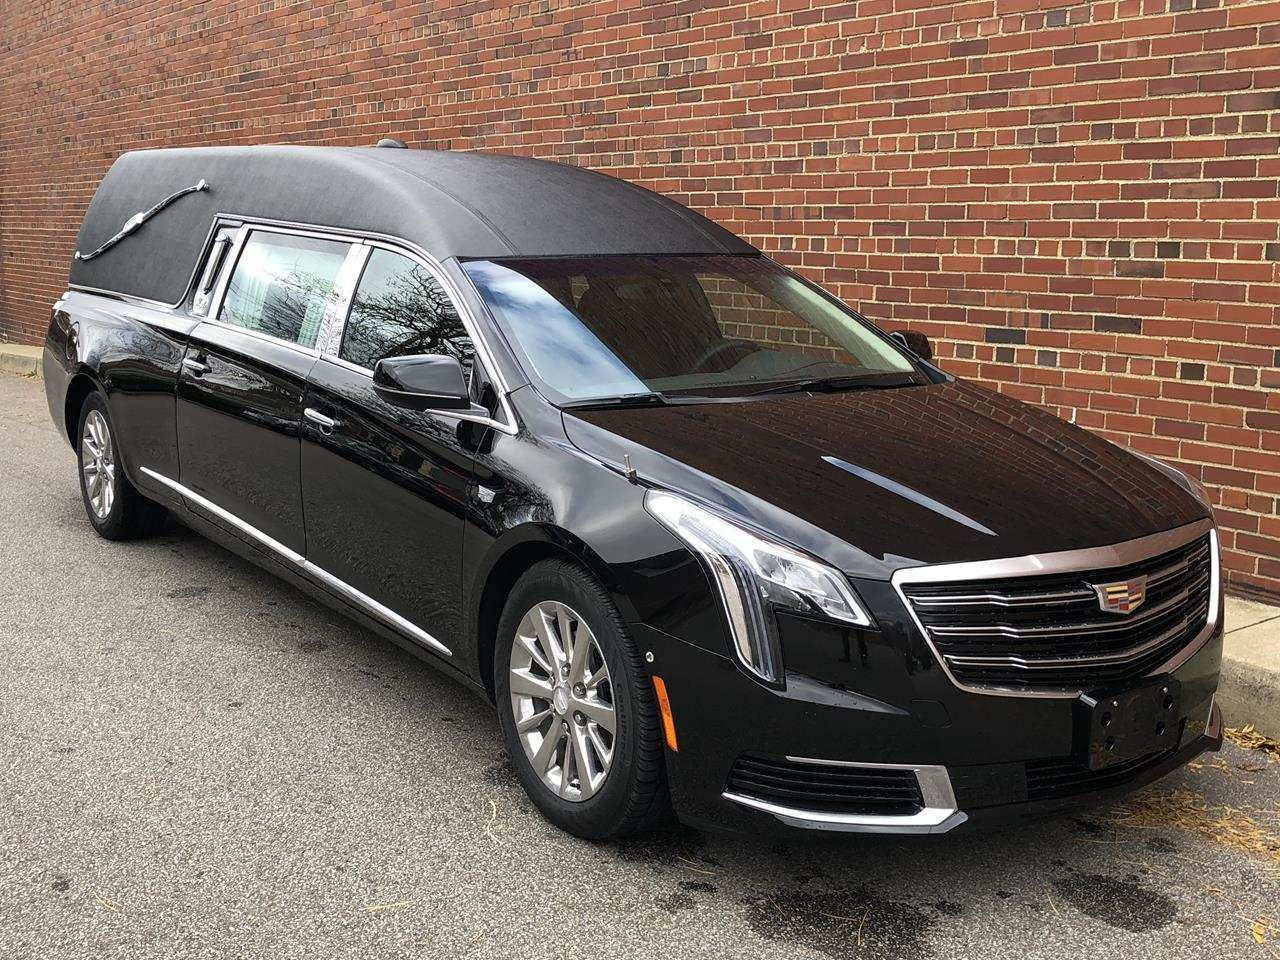 99 All New 2019 Cadillac Hearse First Drive for 2019 Cadillac Hearse